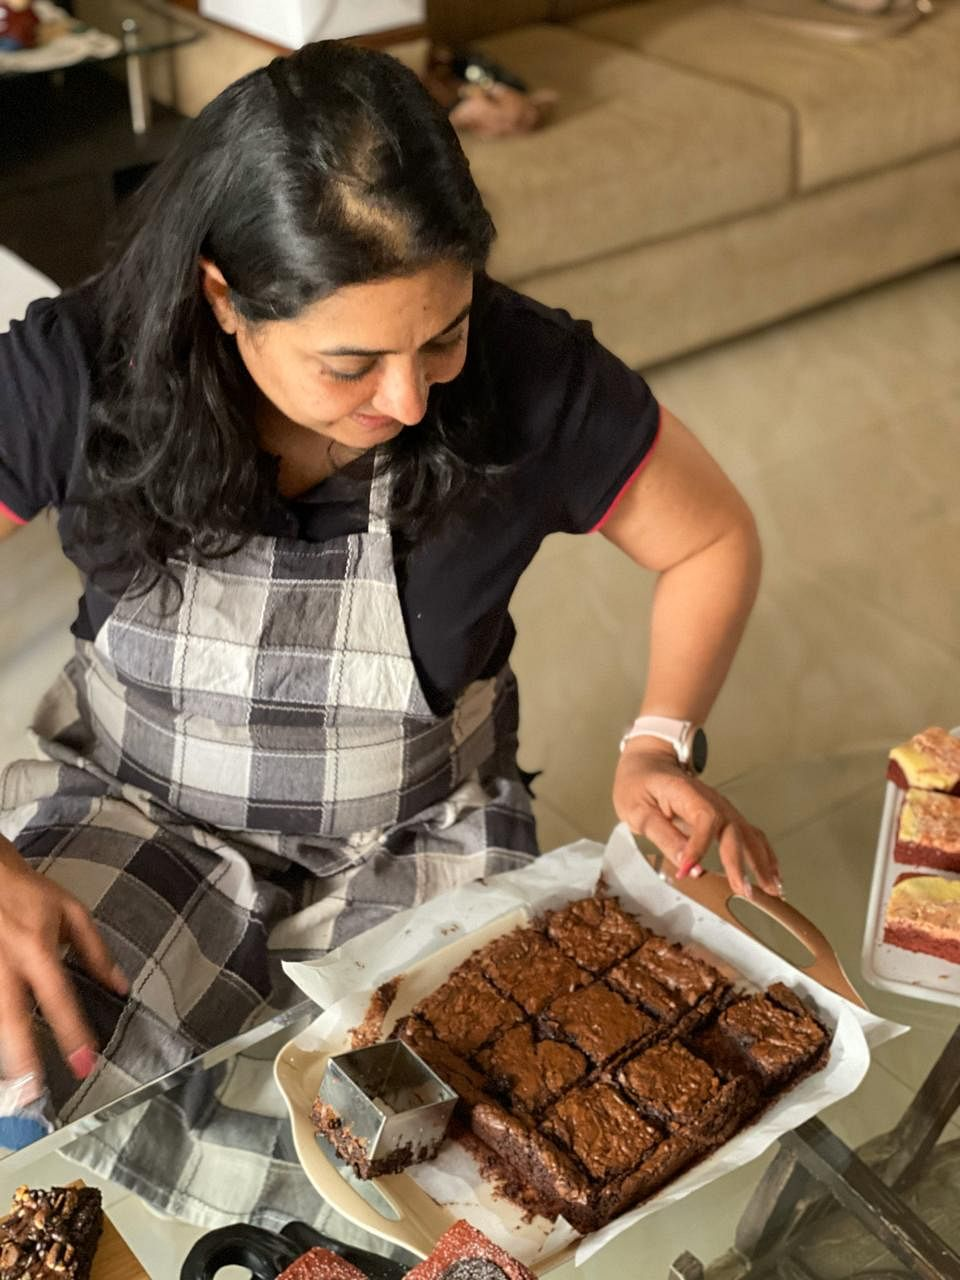 Aju has just baked a batch of chocolate brownies